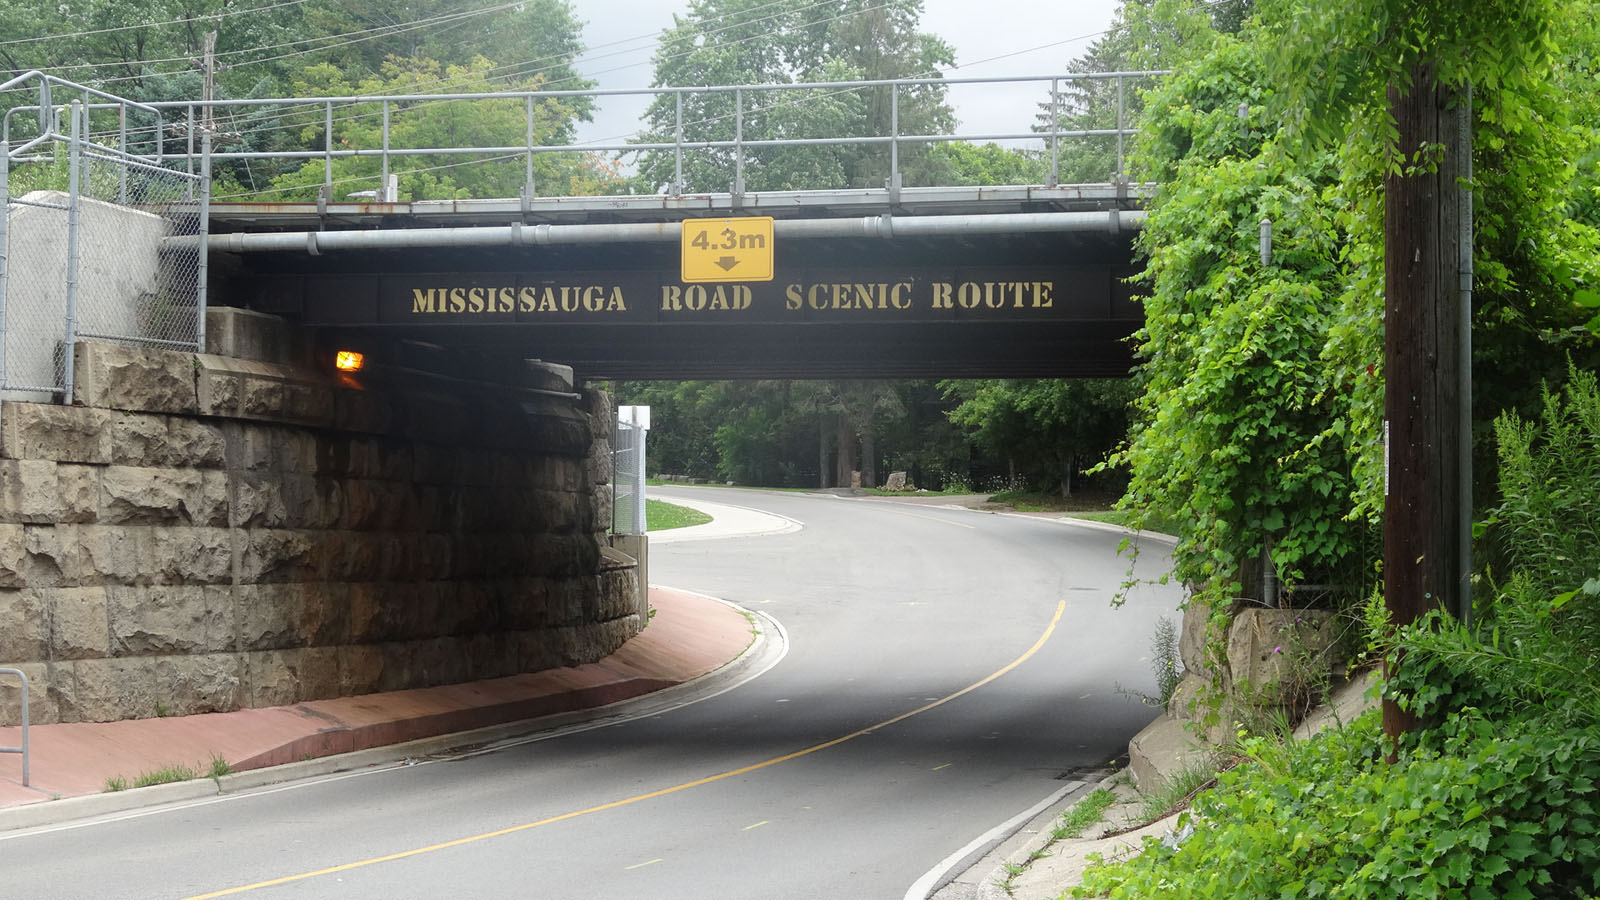 Mississauga rd scenic route 1